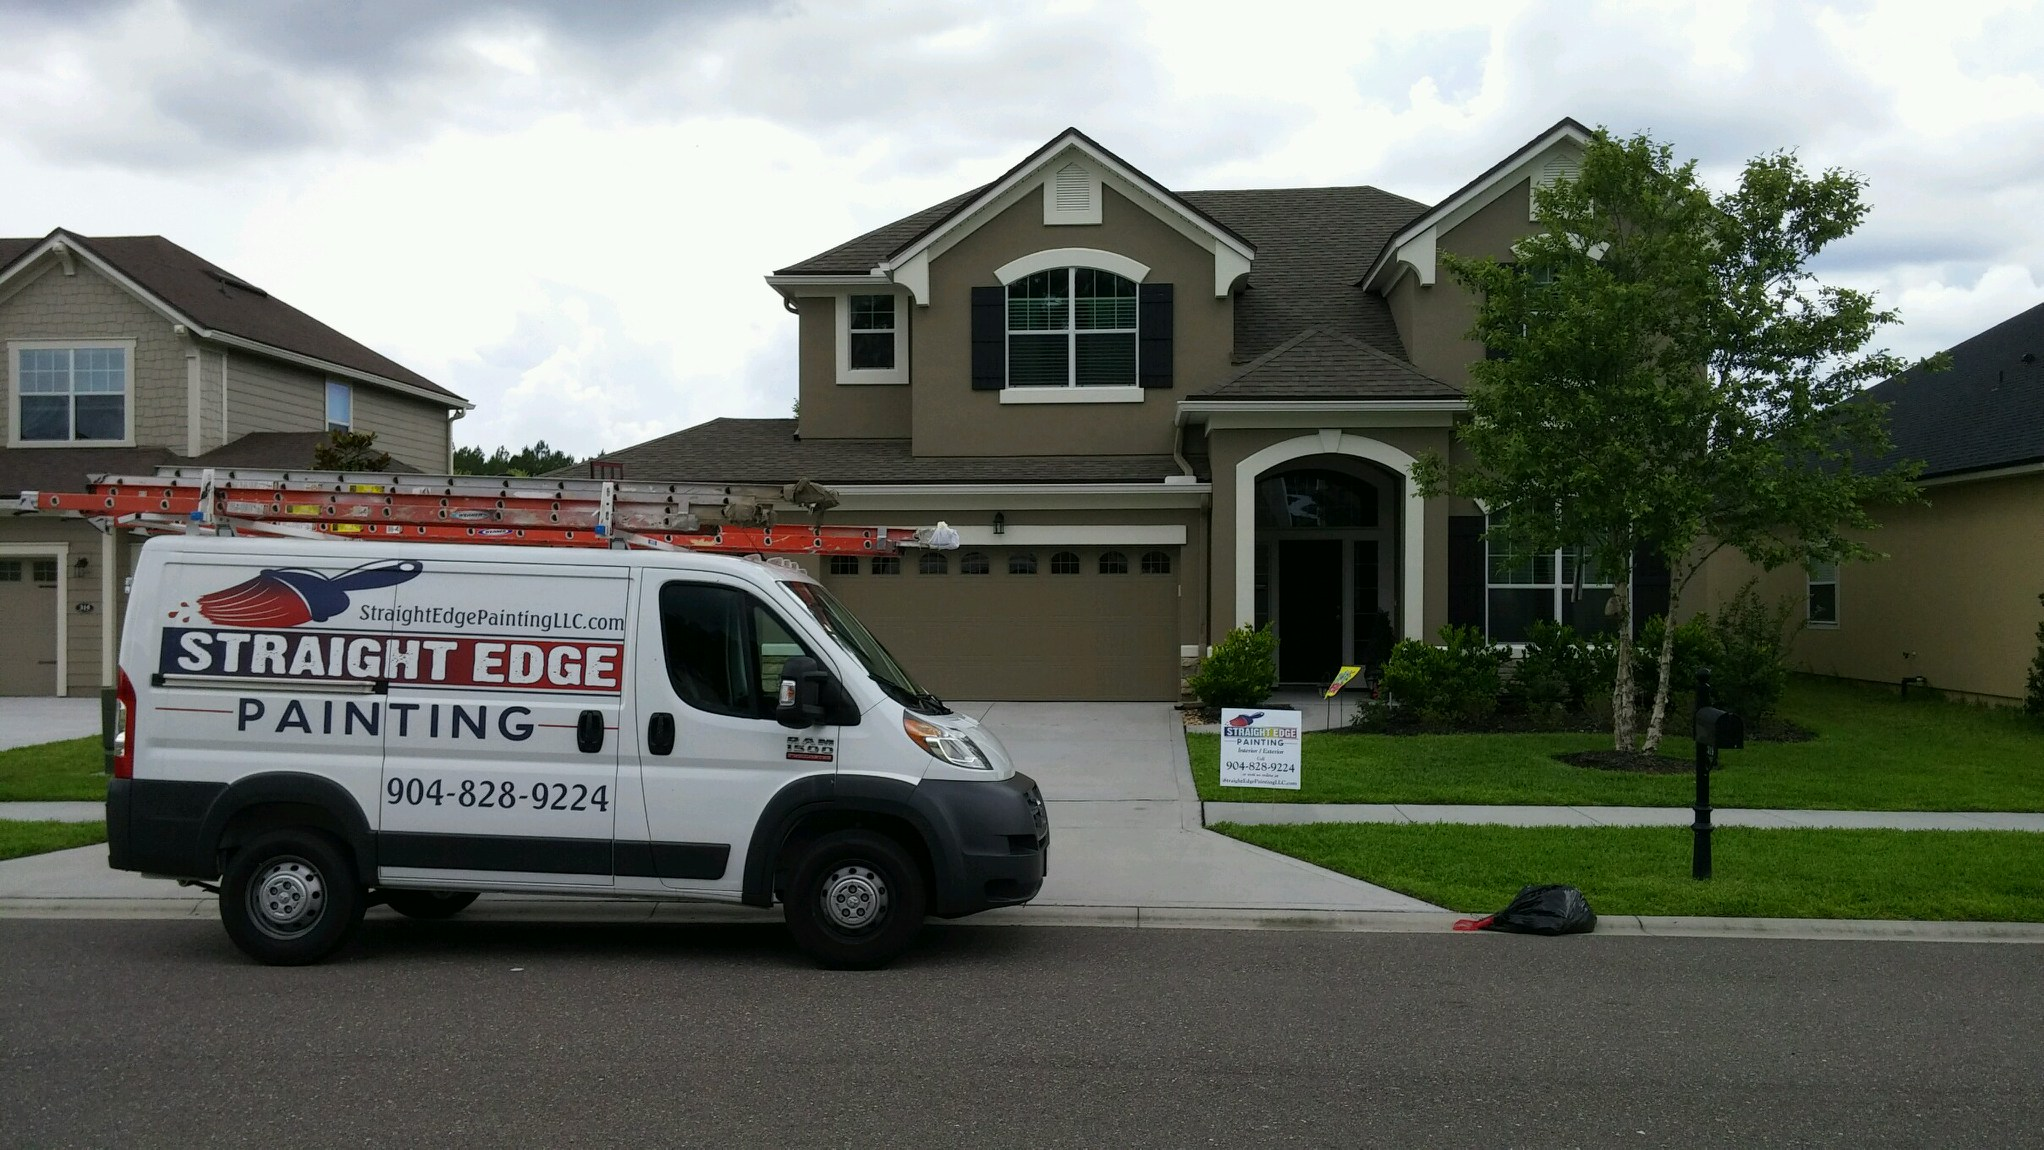 Hairy Painting Service Near Me Painting Service Near Jacksonville Painting Straight Edge Painting Residential Painters Near Me Residential Interior Painters Near Me houzz-03 House Painters Near Me